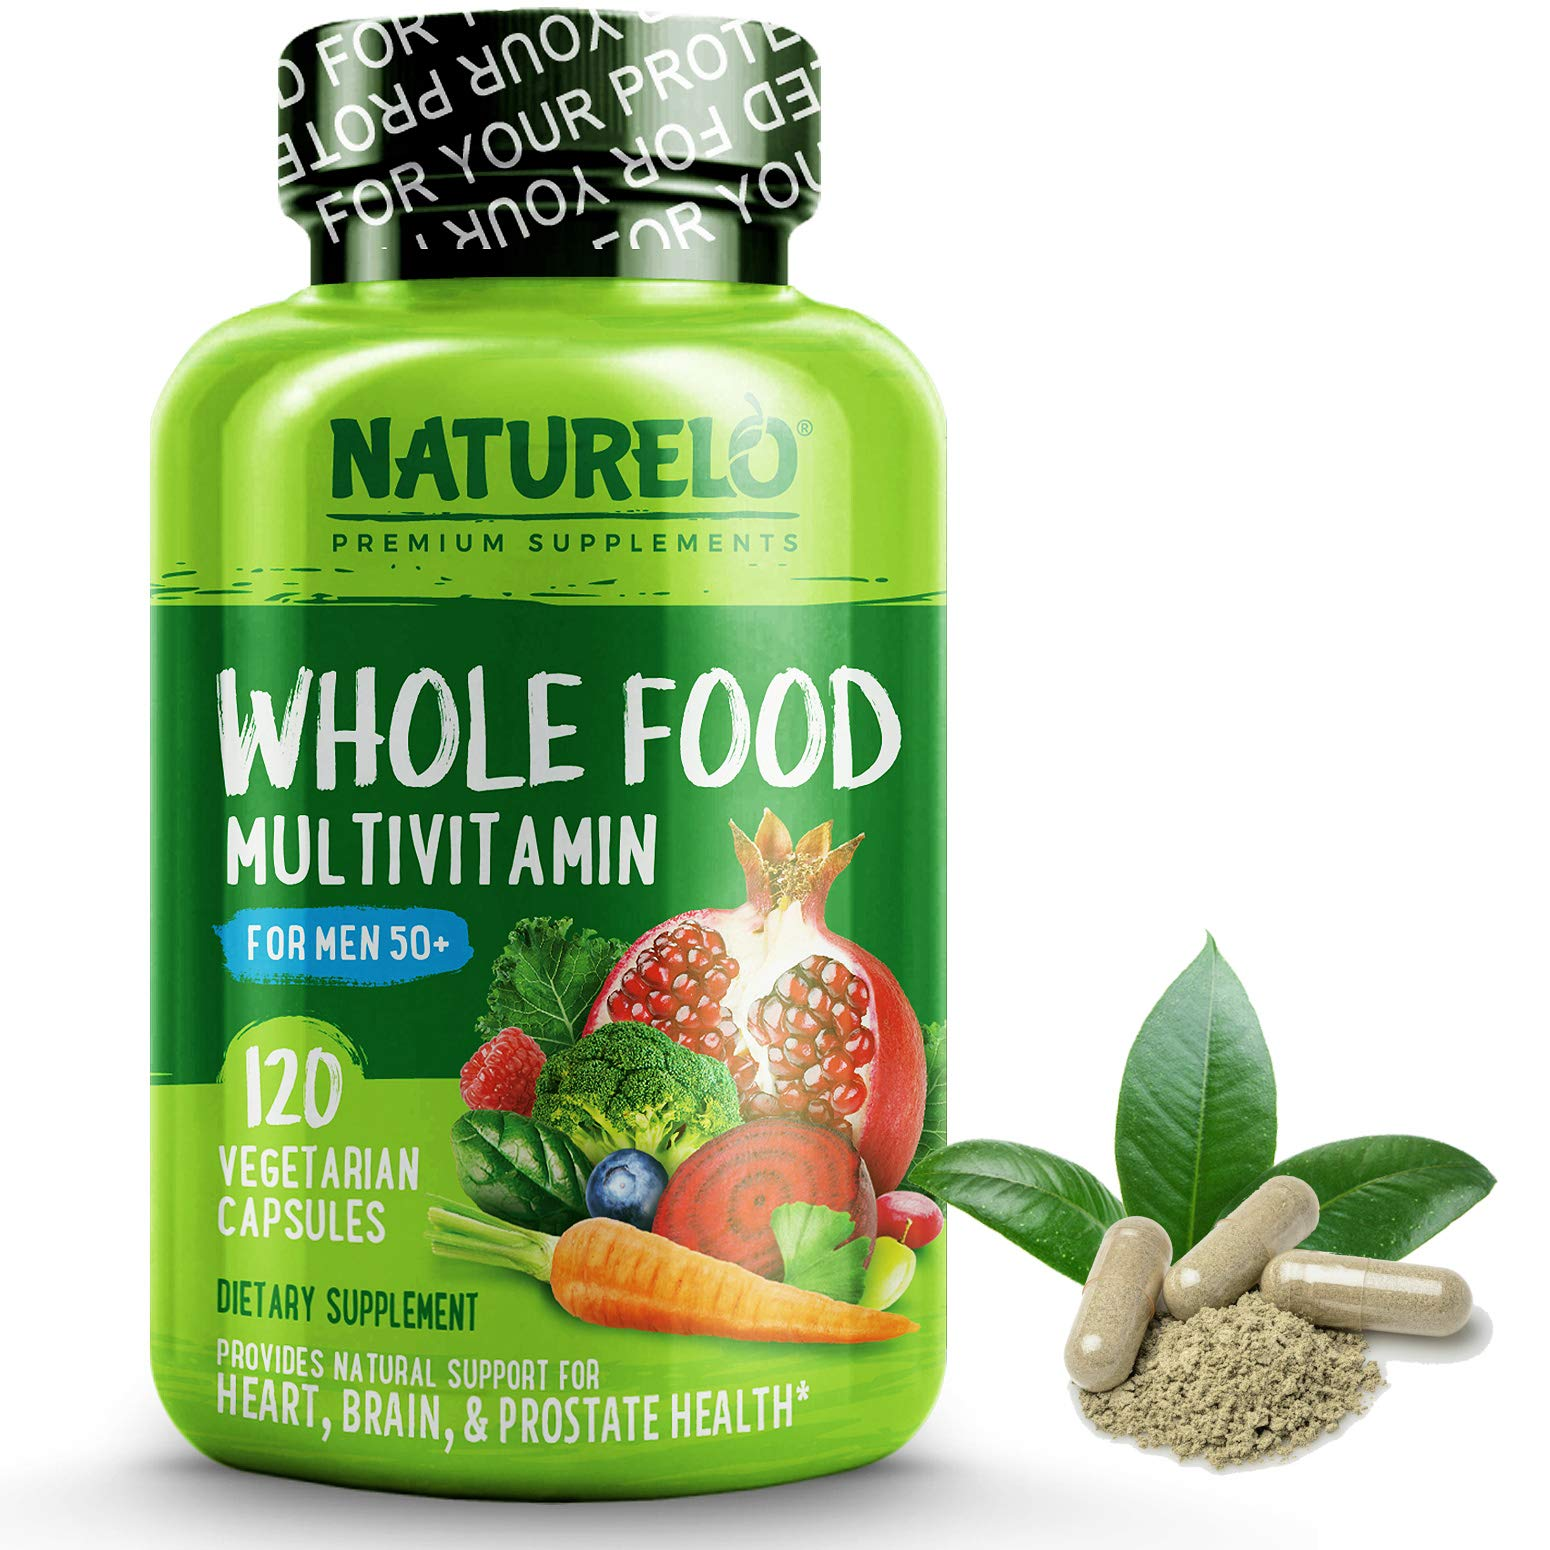 NATURELO Whole Food Multivitamin for Men 50+ - with Natural Vitamins, Minerals, Organic Extracts - Vegan Vegetarian - Best for Energy, Brain, Heart and Eye Health - 120 Capsules by NATURELO